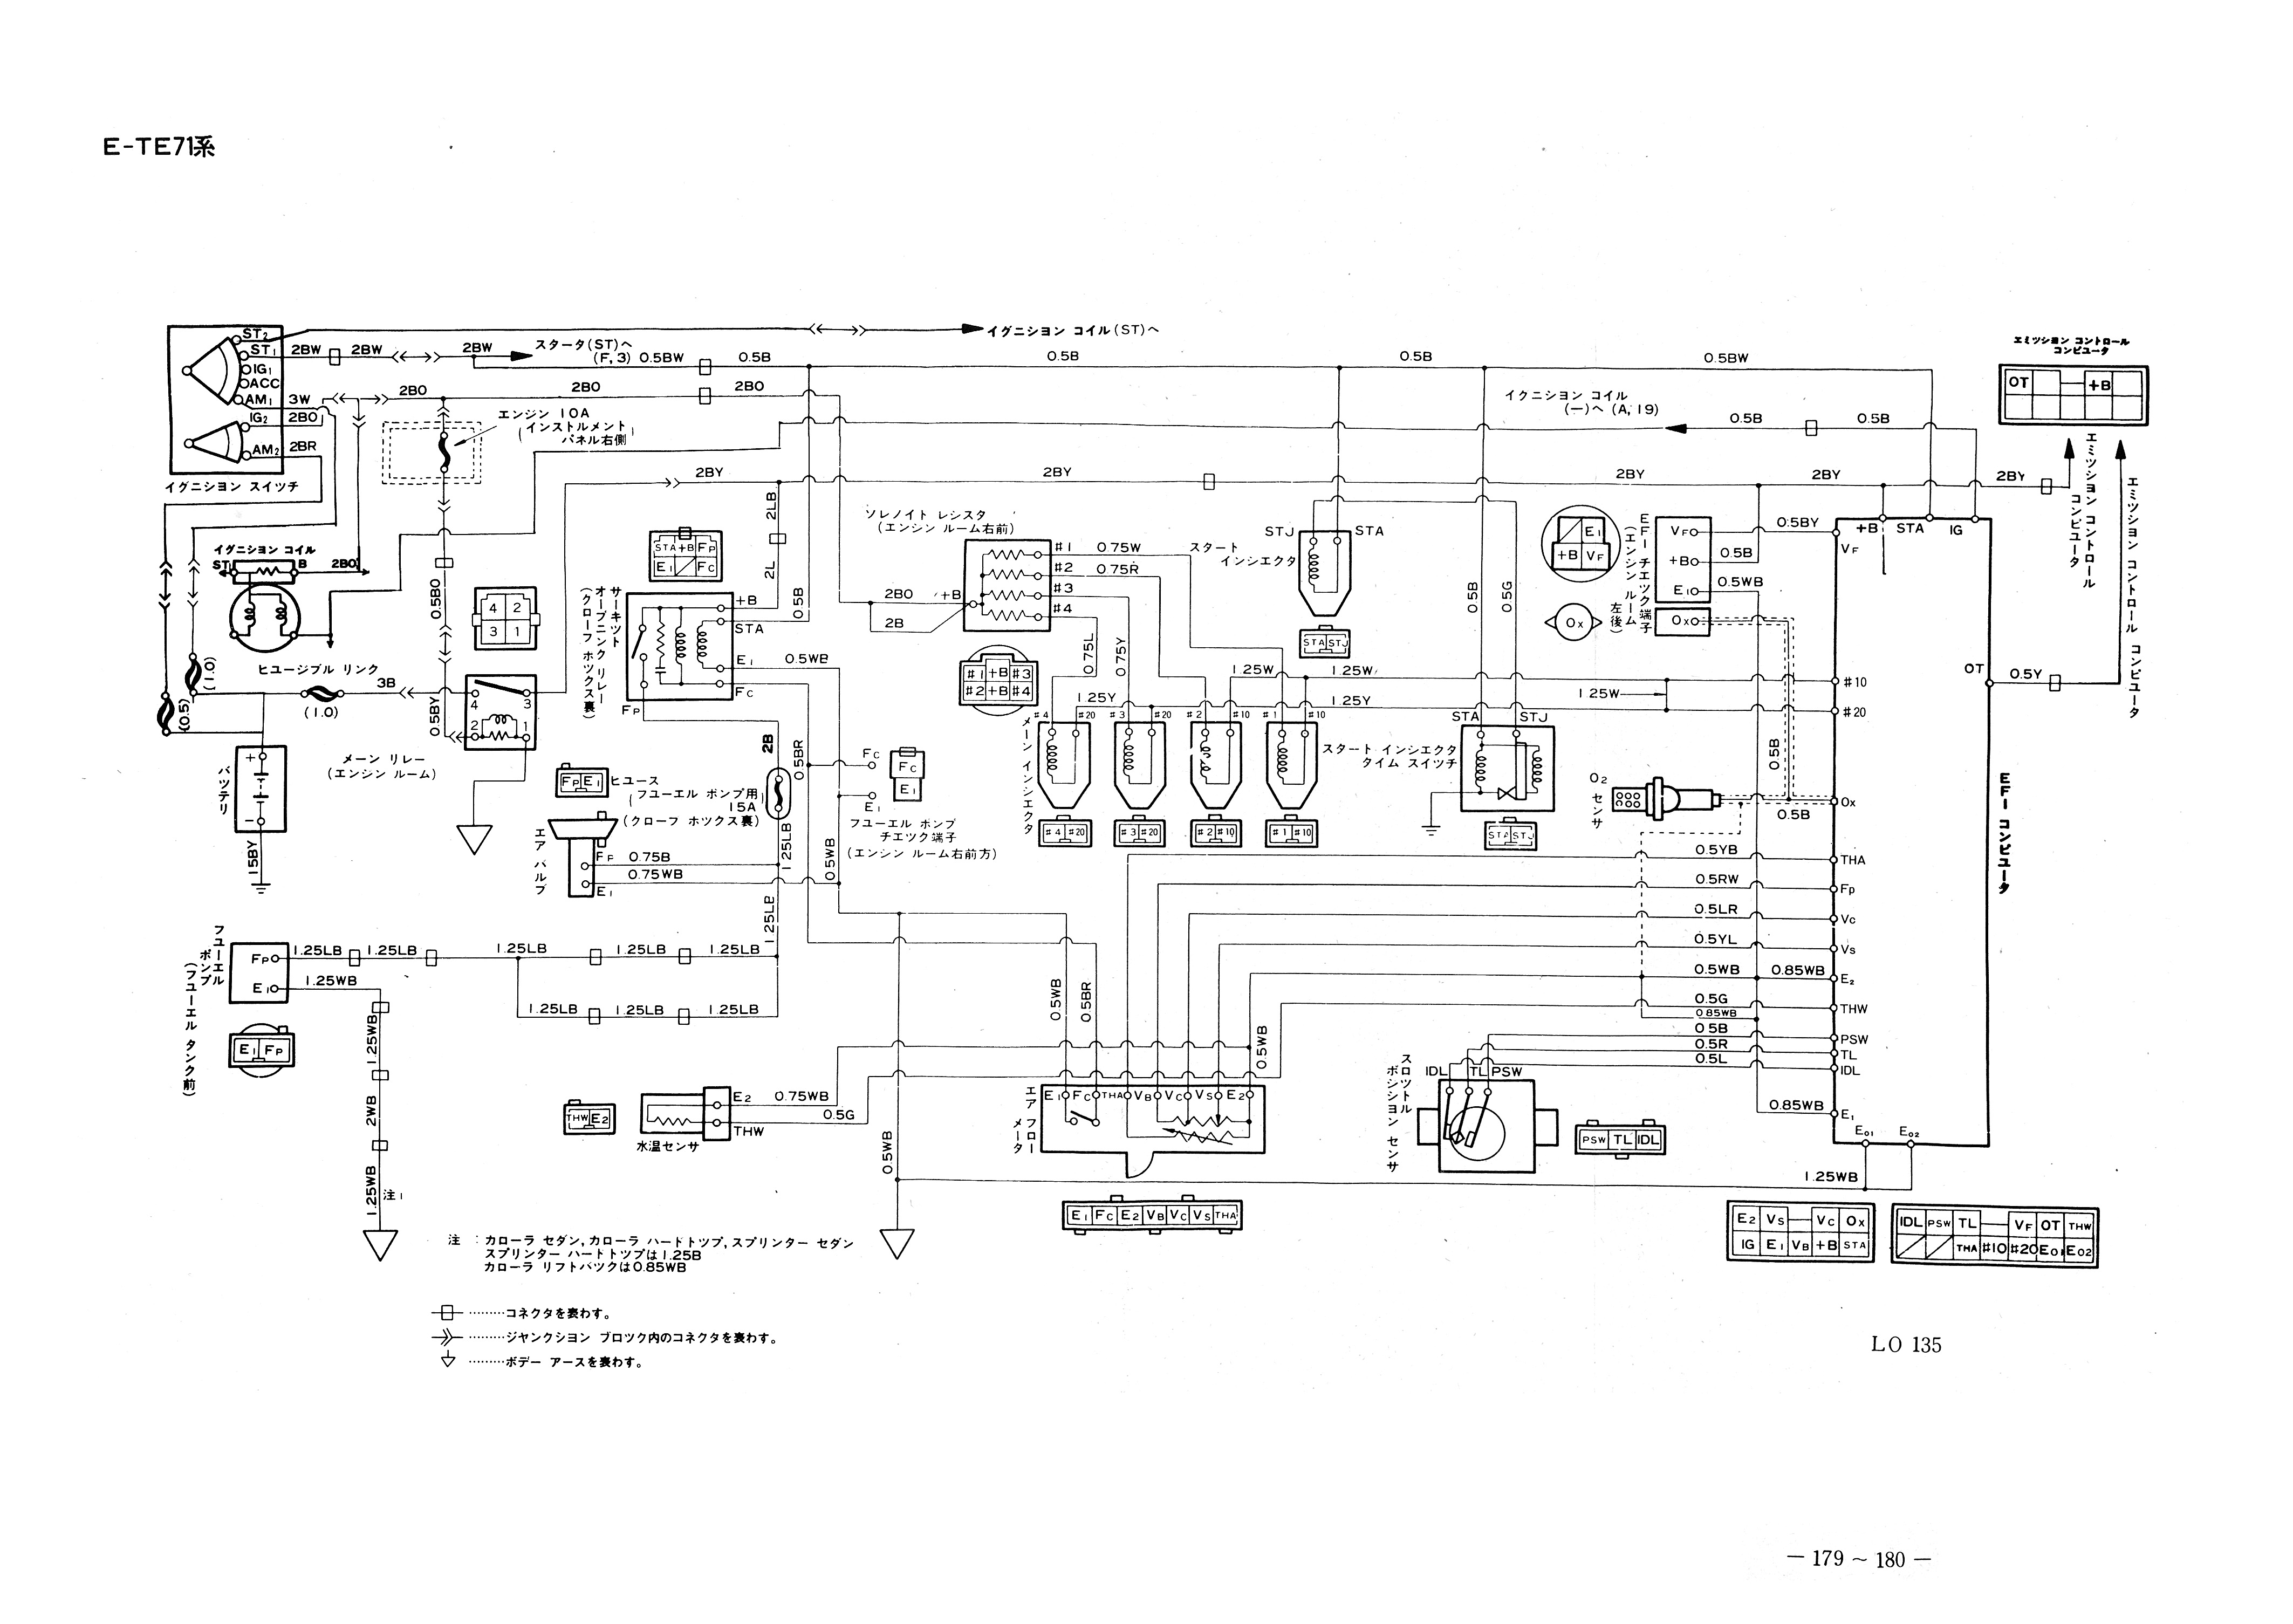 2001 toyota corolla wiring diagram 2001 image 1999 toyota corolla electrical wiring diagram manual wiring on 2001 toyota corolla wiring diagram